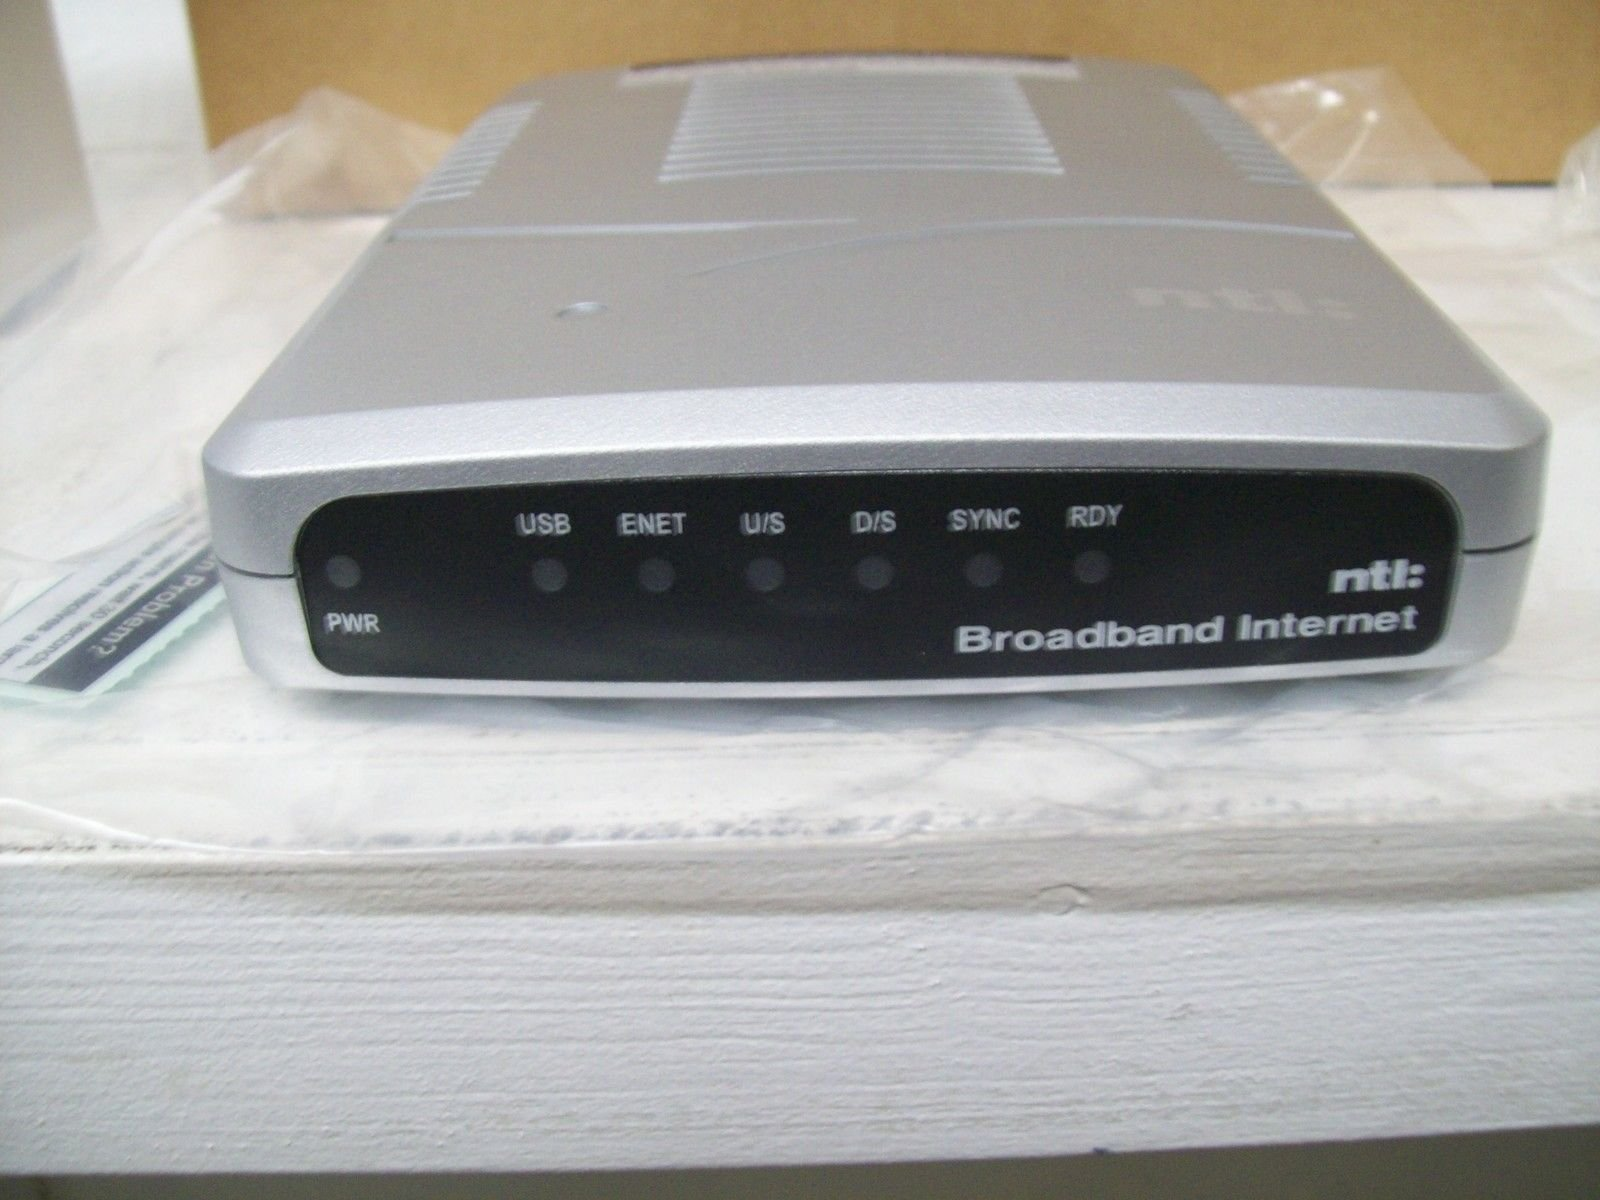 NTL 200 European Cable Modem Model # 08004EU w/Power Adapter & Leads by Ambit (Image #1)